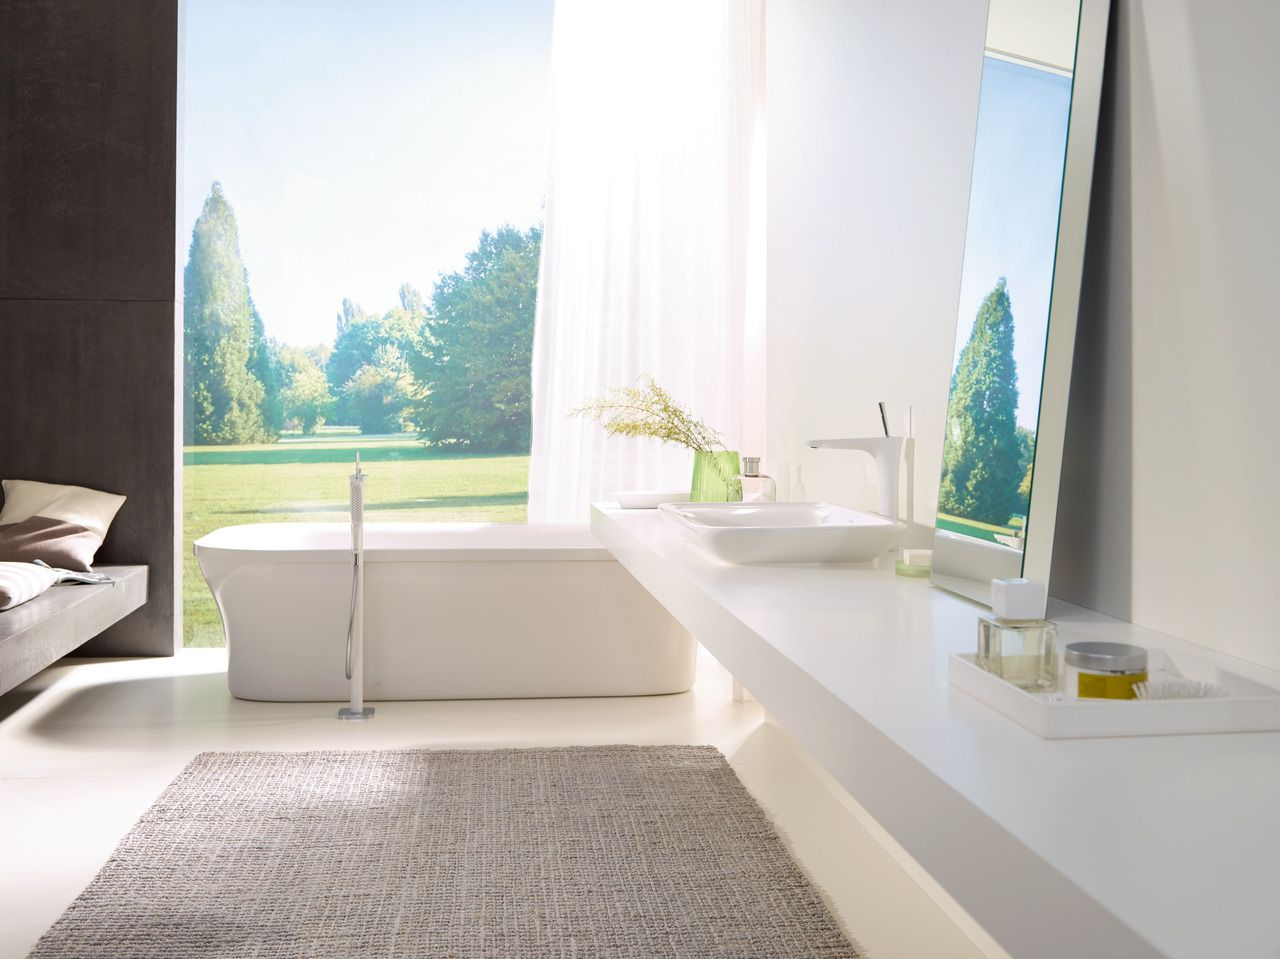 Avantgarde bathroom design: Graceful character and fresh look with a ...